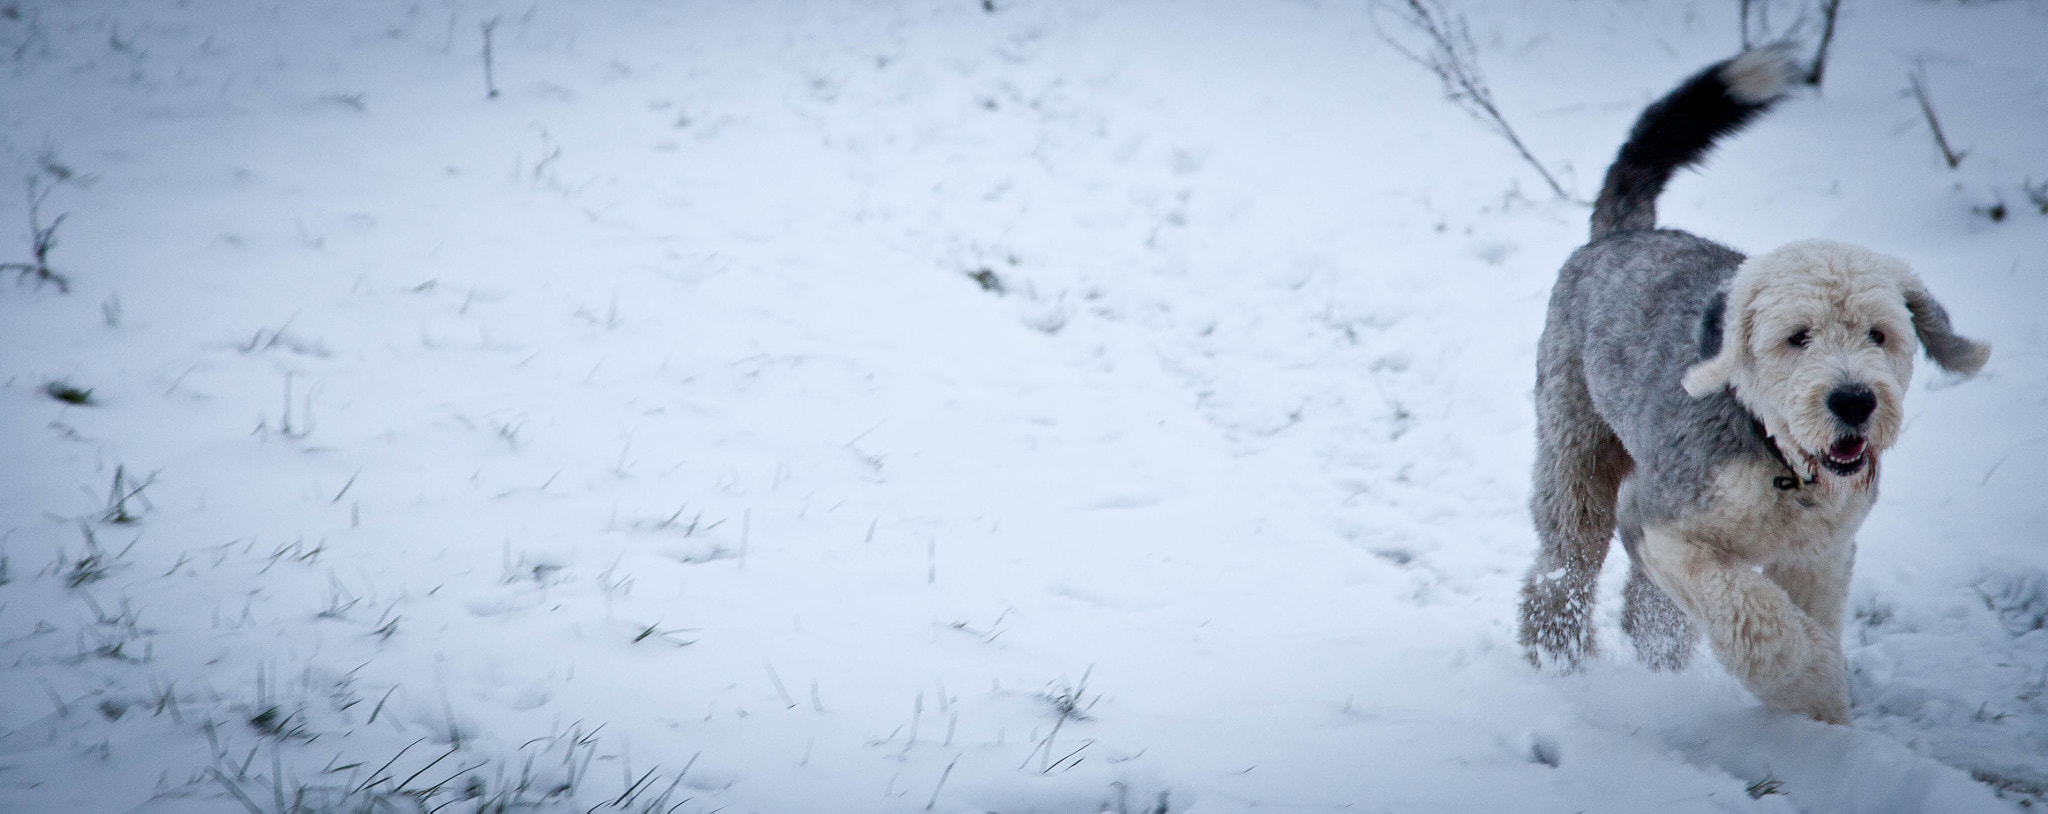 Photograph Old English Sheepdog in the snow by Anna Goodrum on 500px